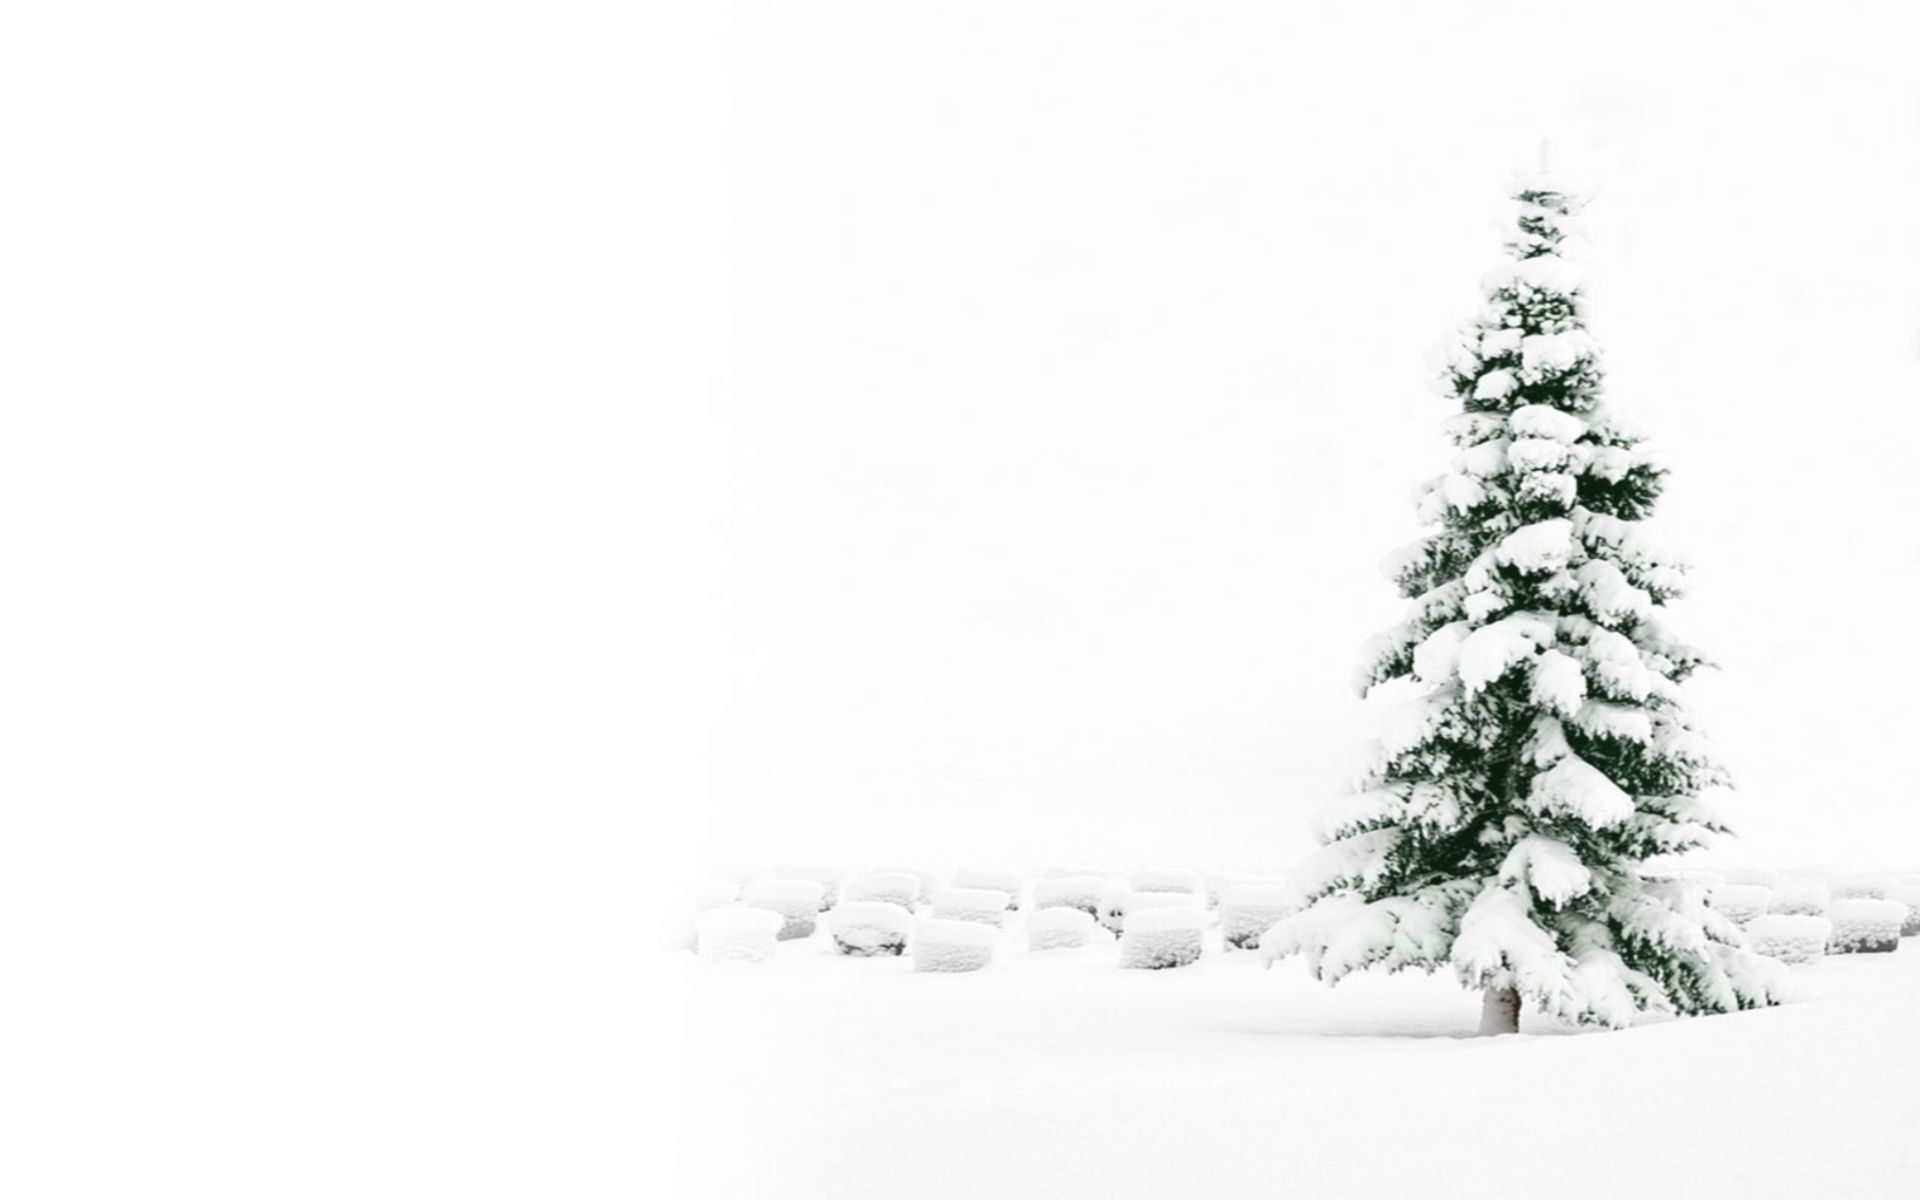 71 White Christmas Wallpapers On Wallpaperplay Christmas Desktop Wallpaper Christmas Wallpaper Hd Christmas Desktop